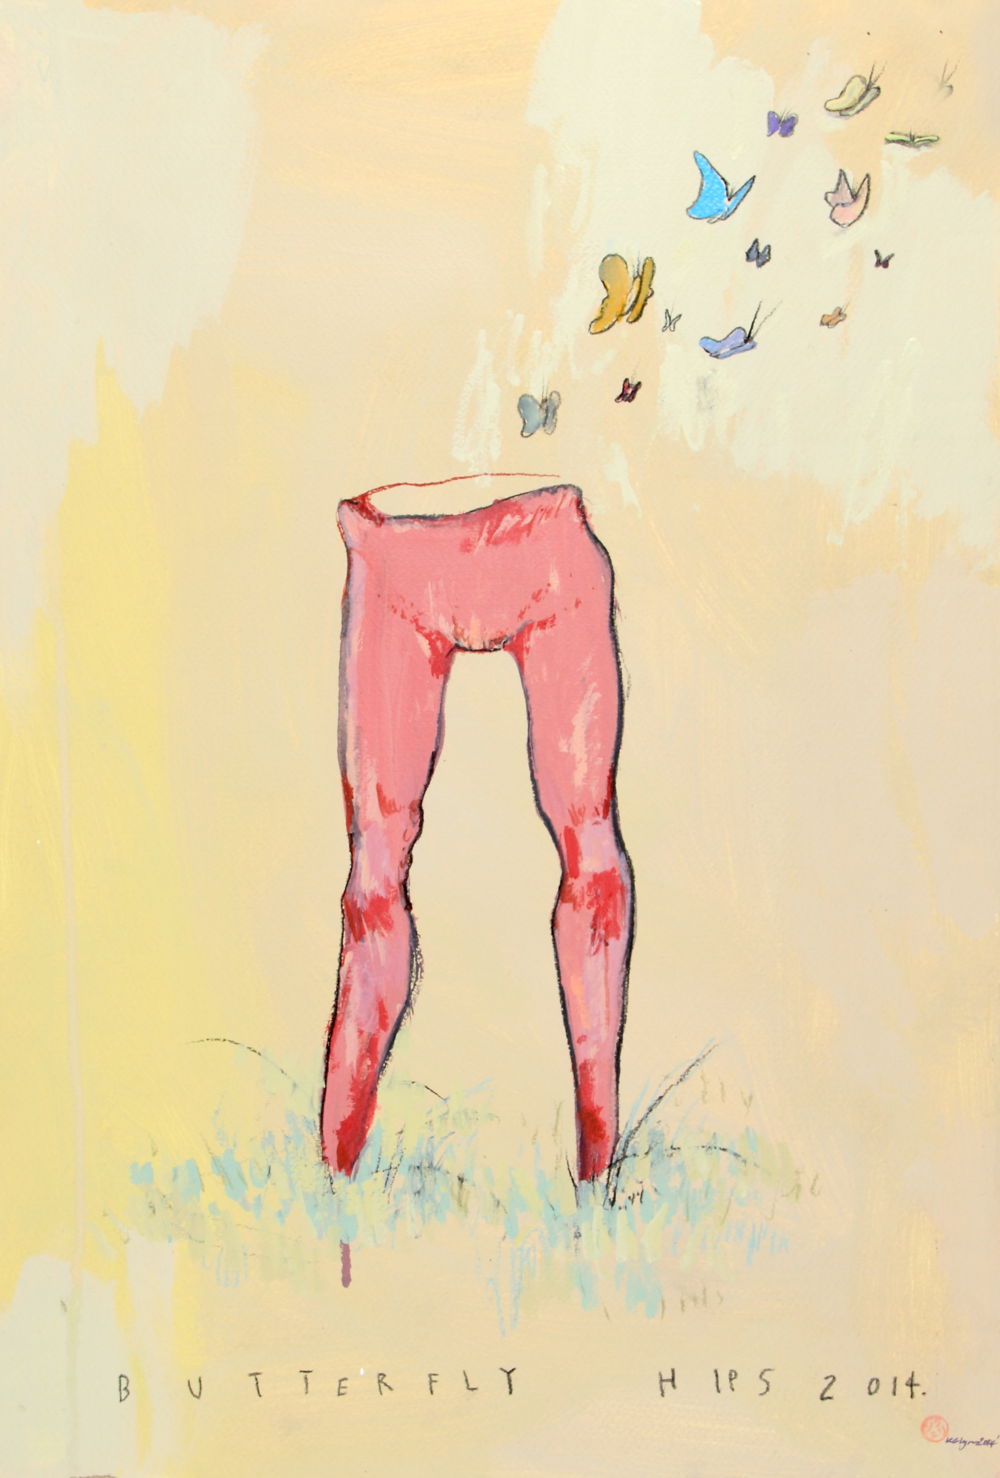 Butterfly Hips 2014, 2014   [private collection NY  , NY]  Acrylic on paper  15 x 22 in.